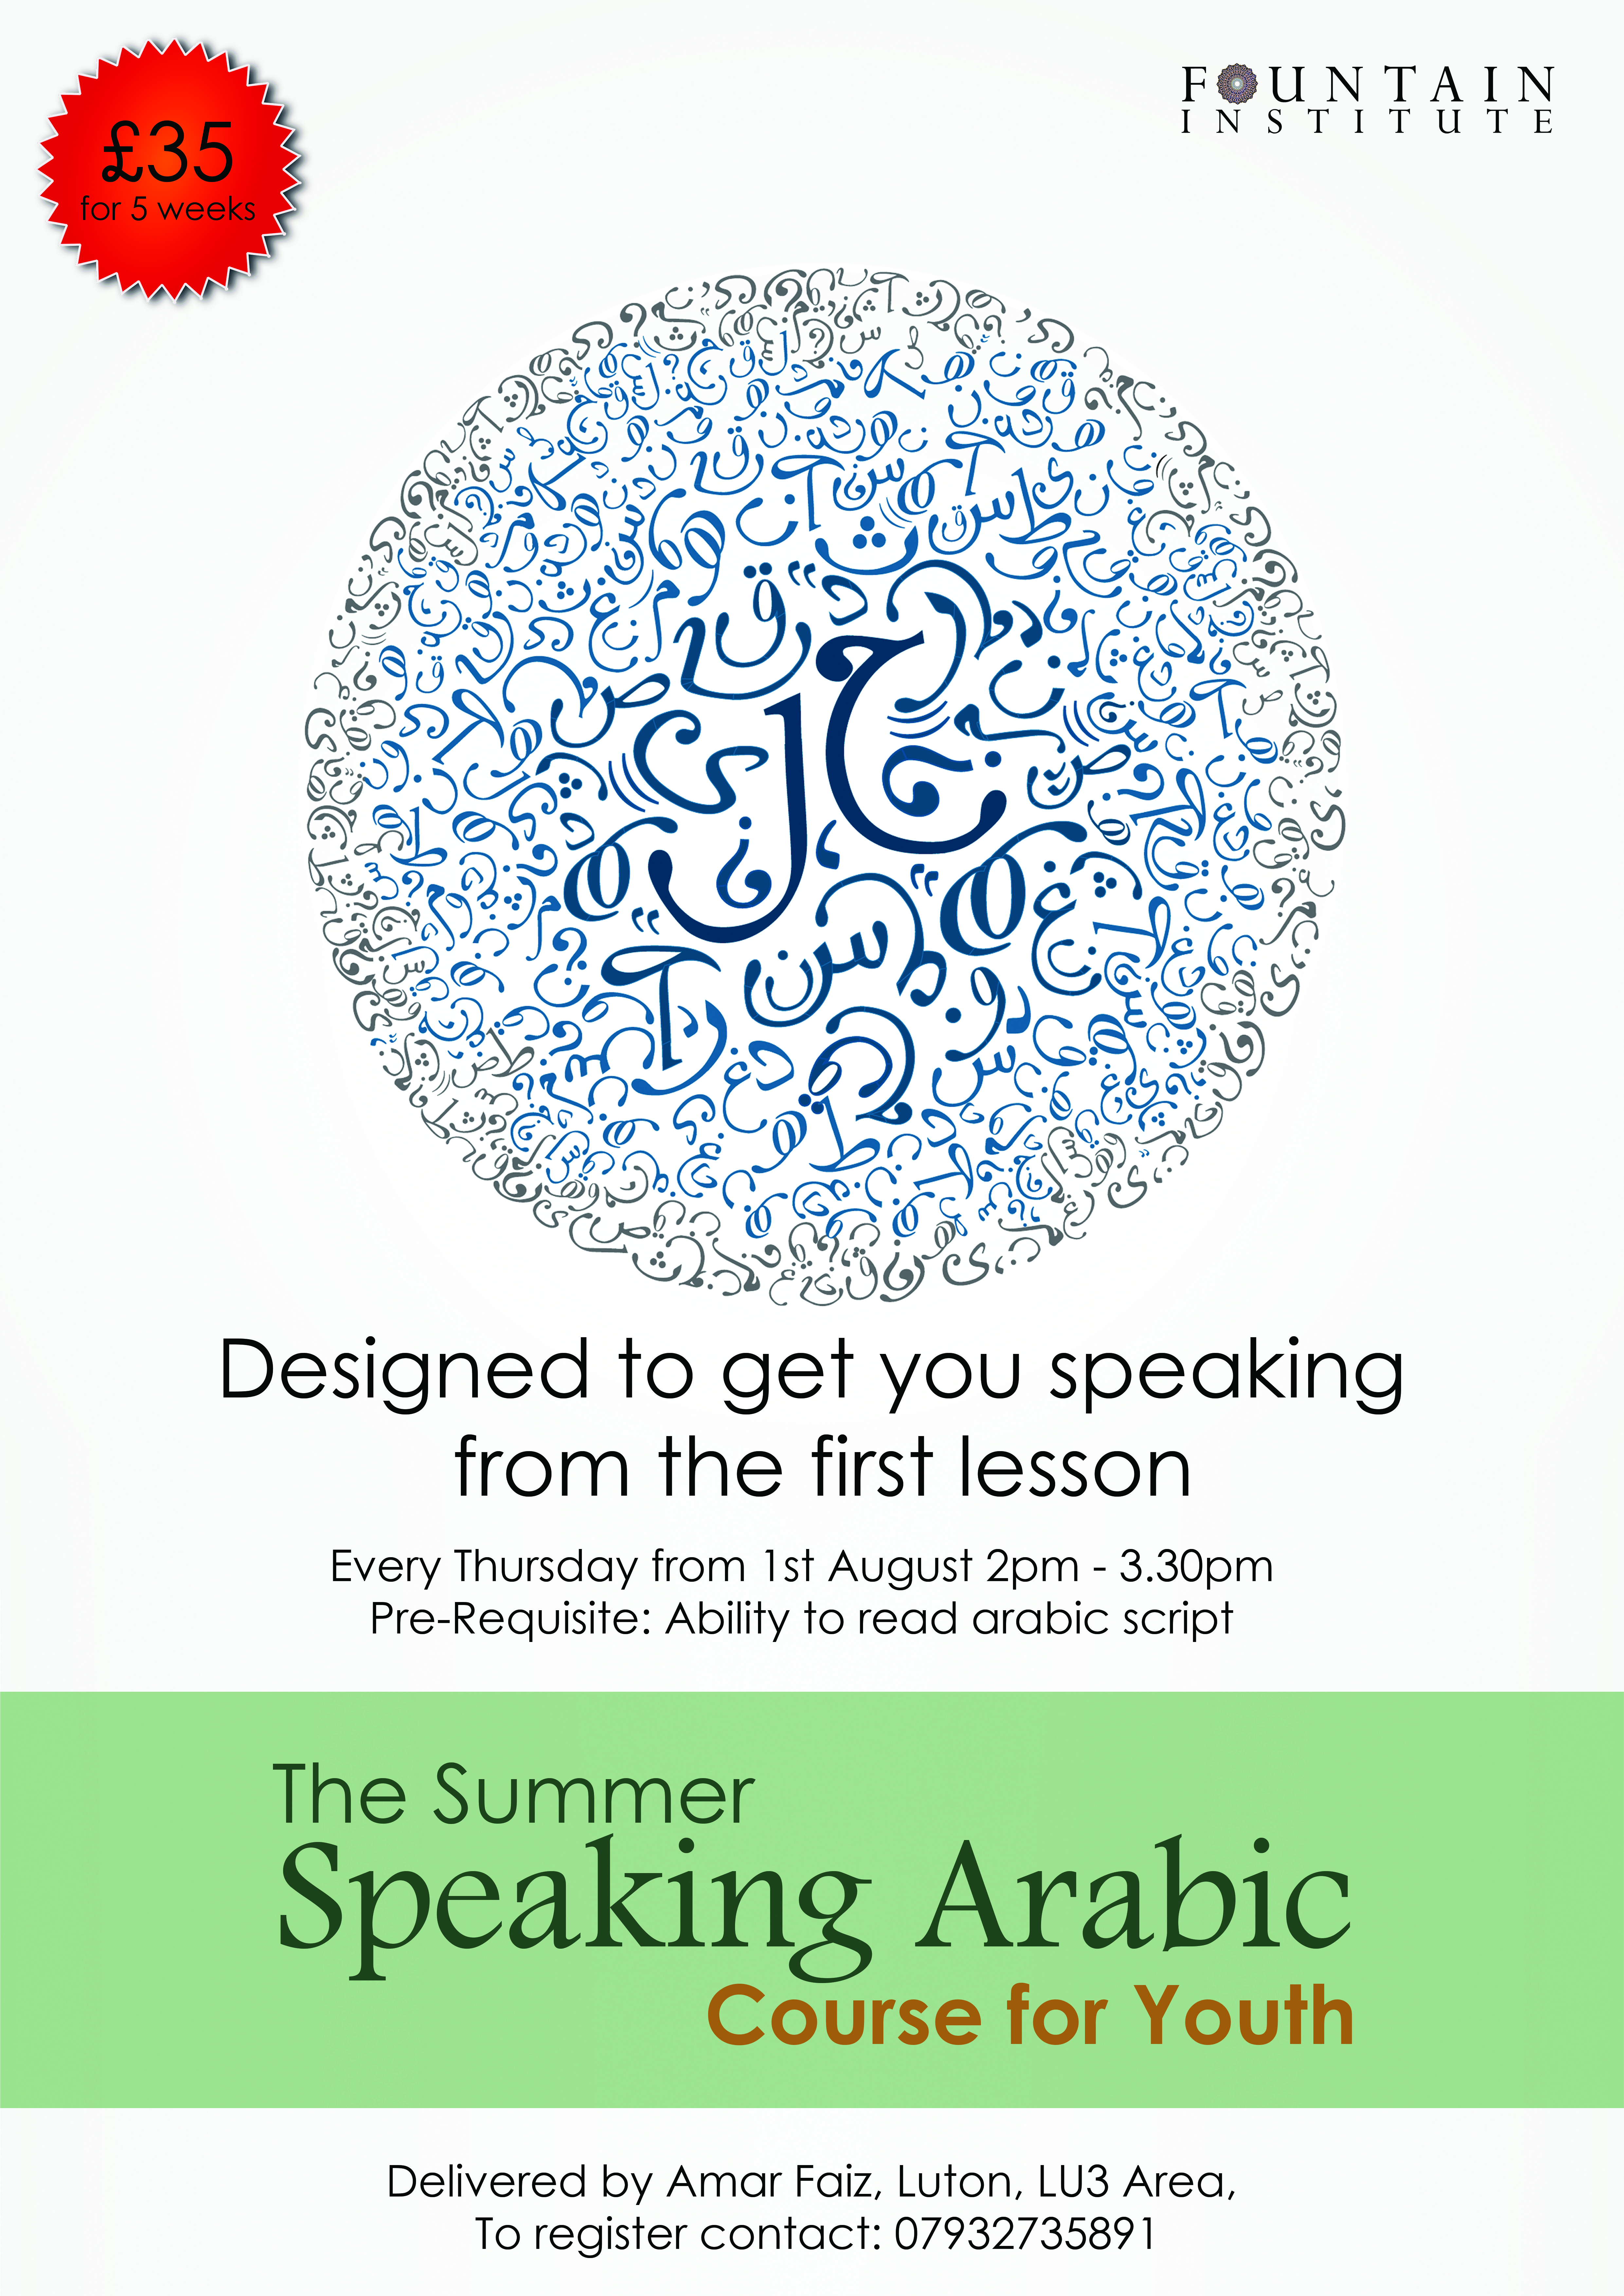 Course: The Summer Speaking Arabic Course for Youth - Fountain Institute